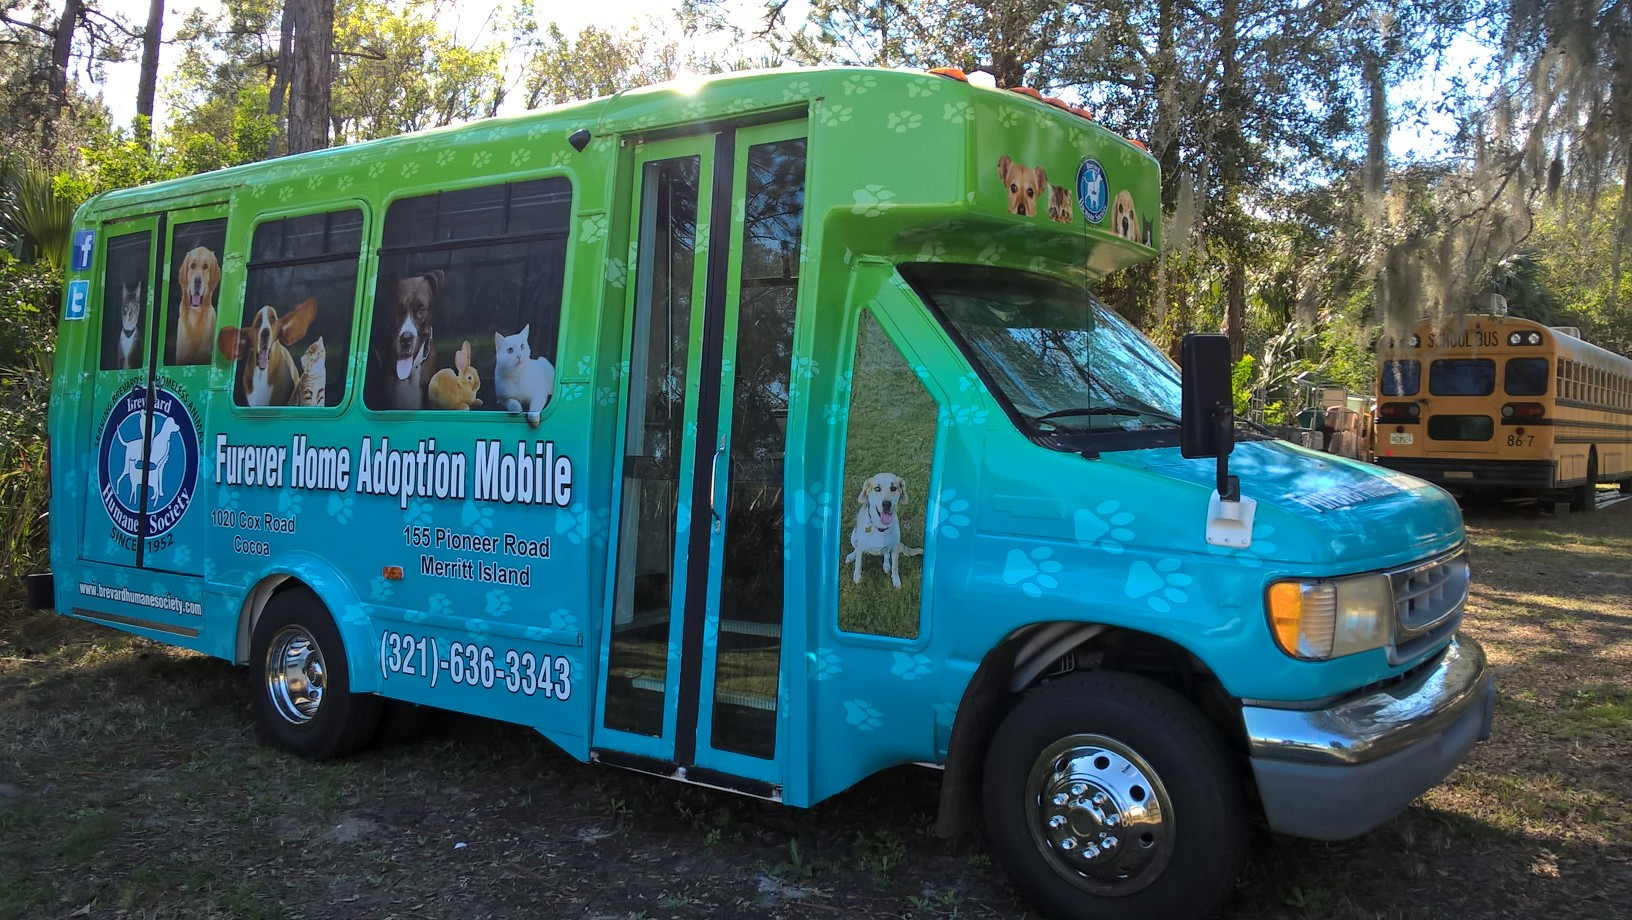 Furever Home Adoption Mobile